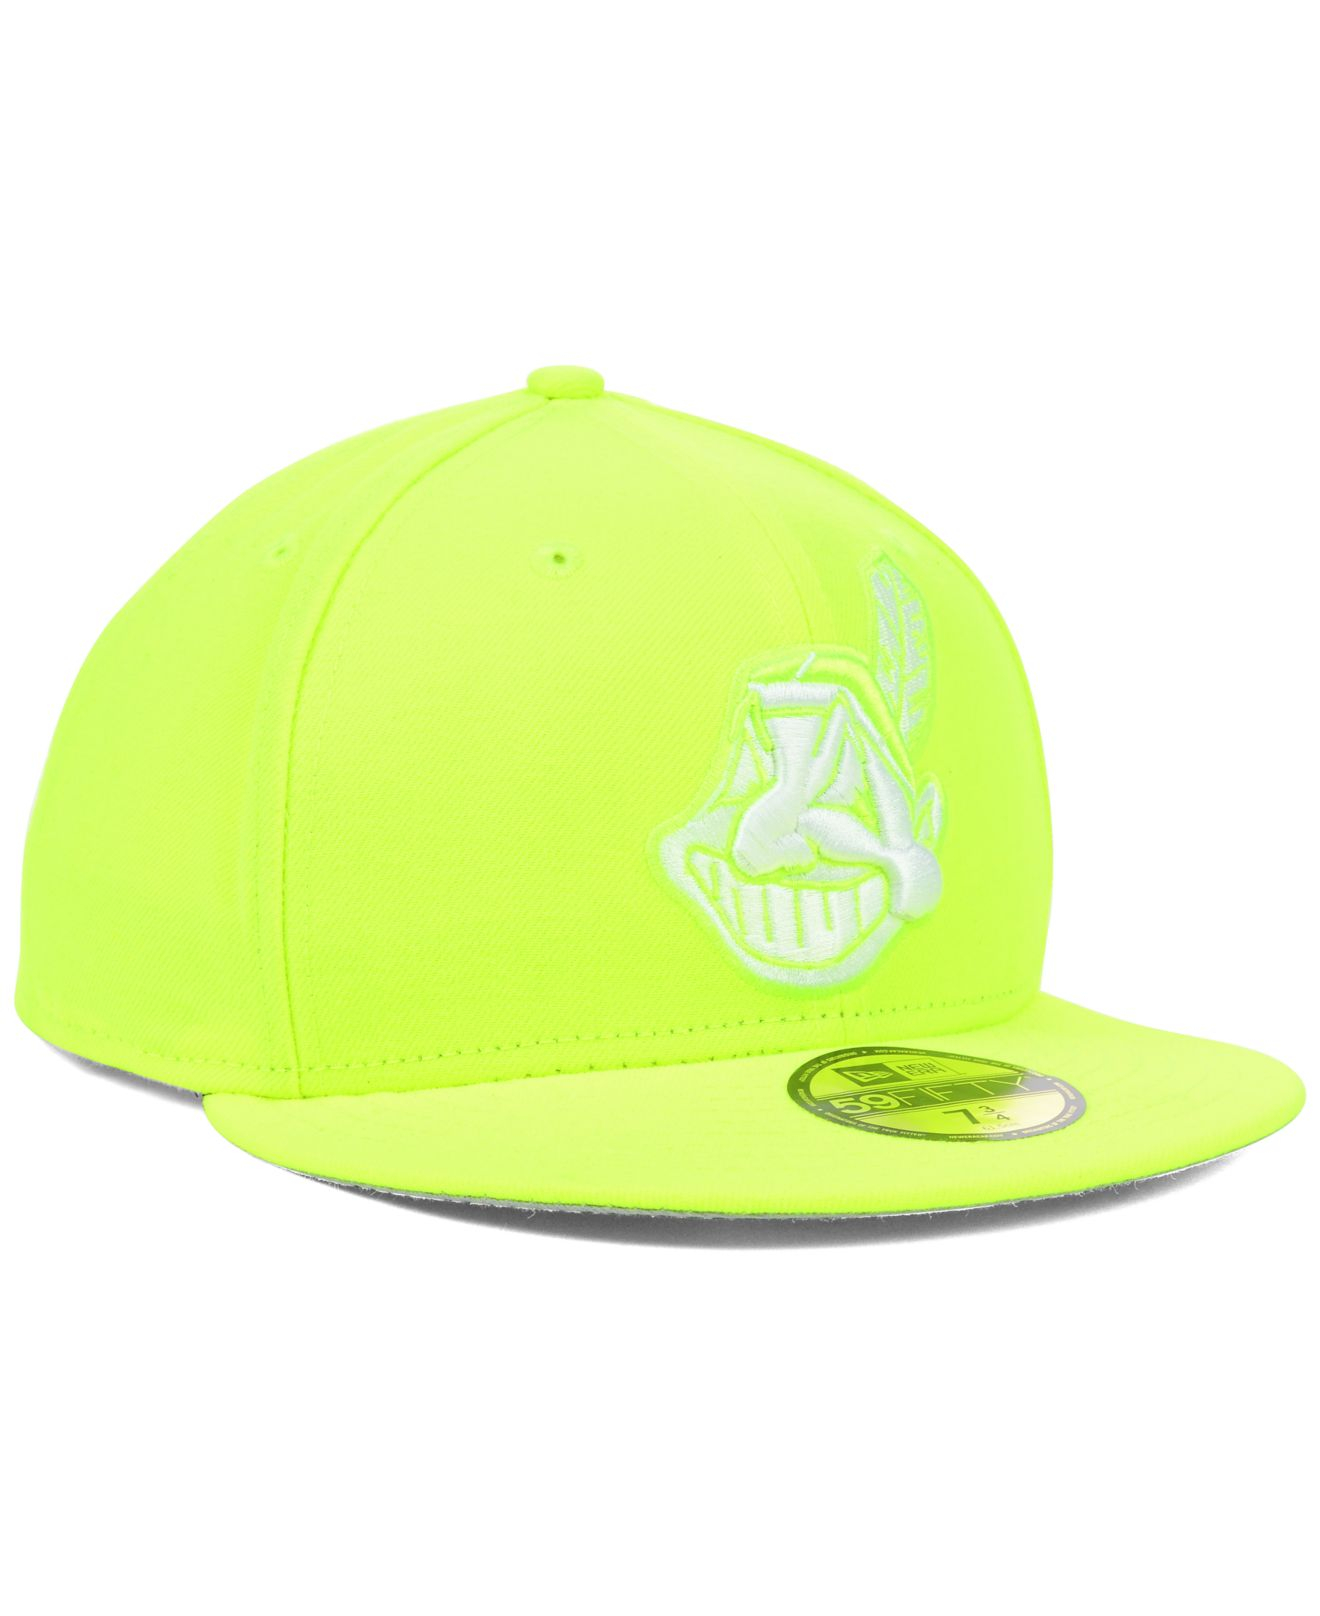 best website 071b4 43423 ... wholesale lyst ktz cleveland indians mlb c dub 59fifty cap in yellow  for men 08b26 2af0b